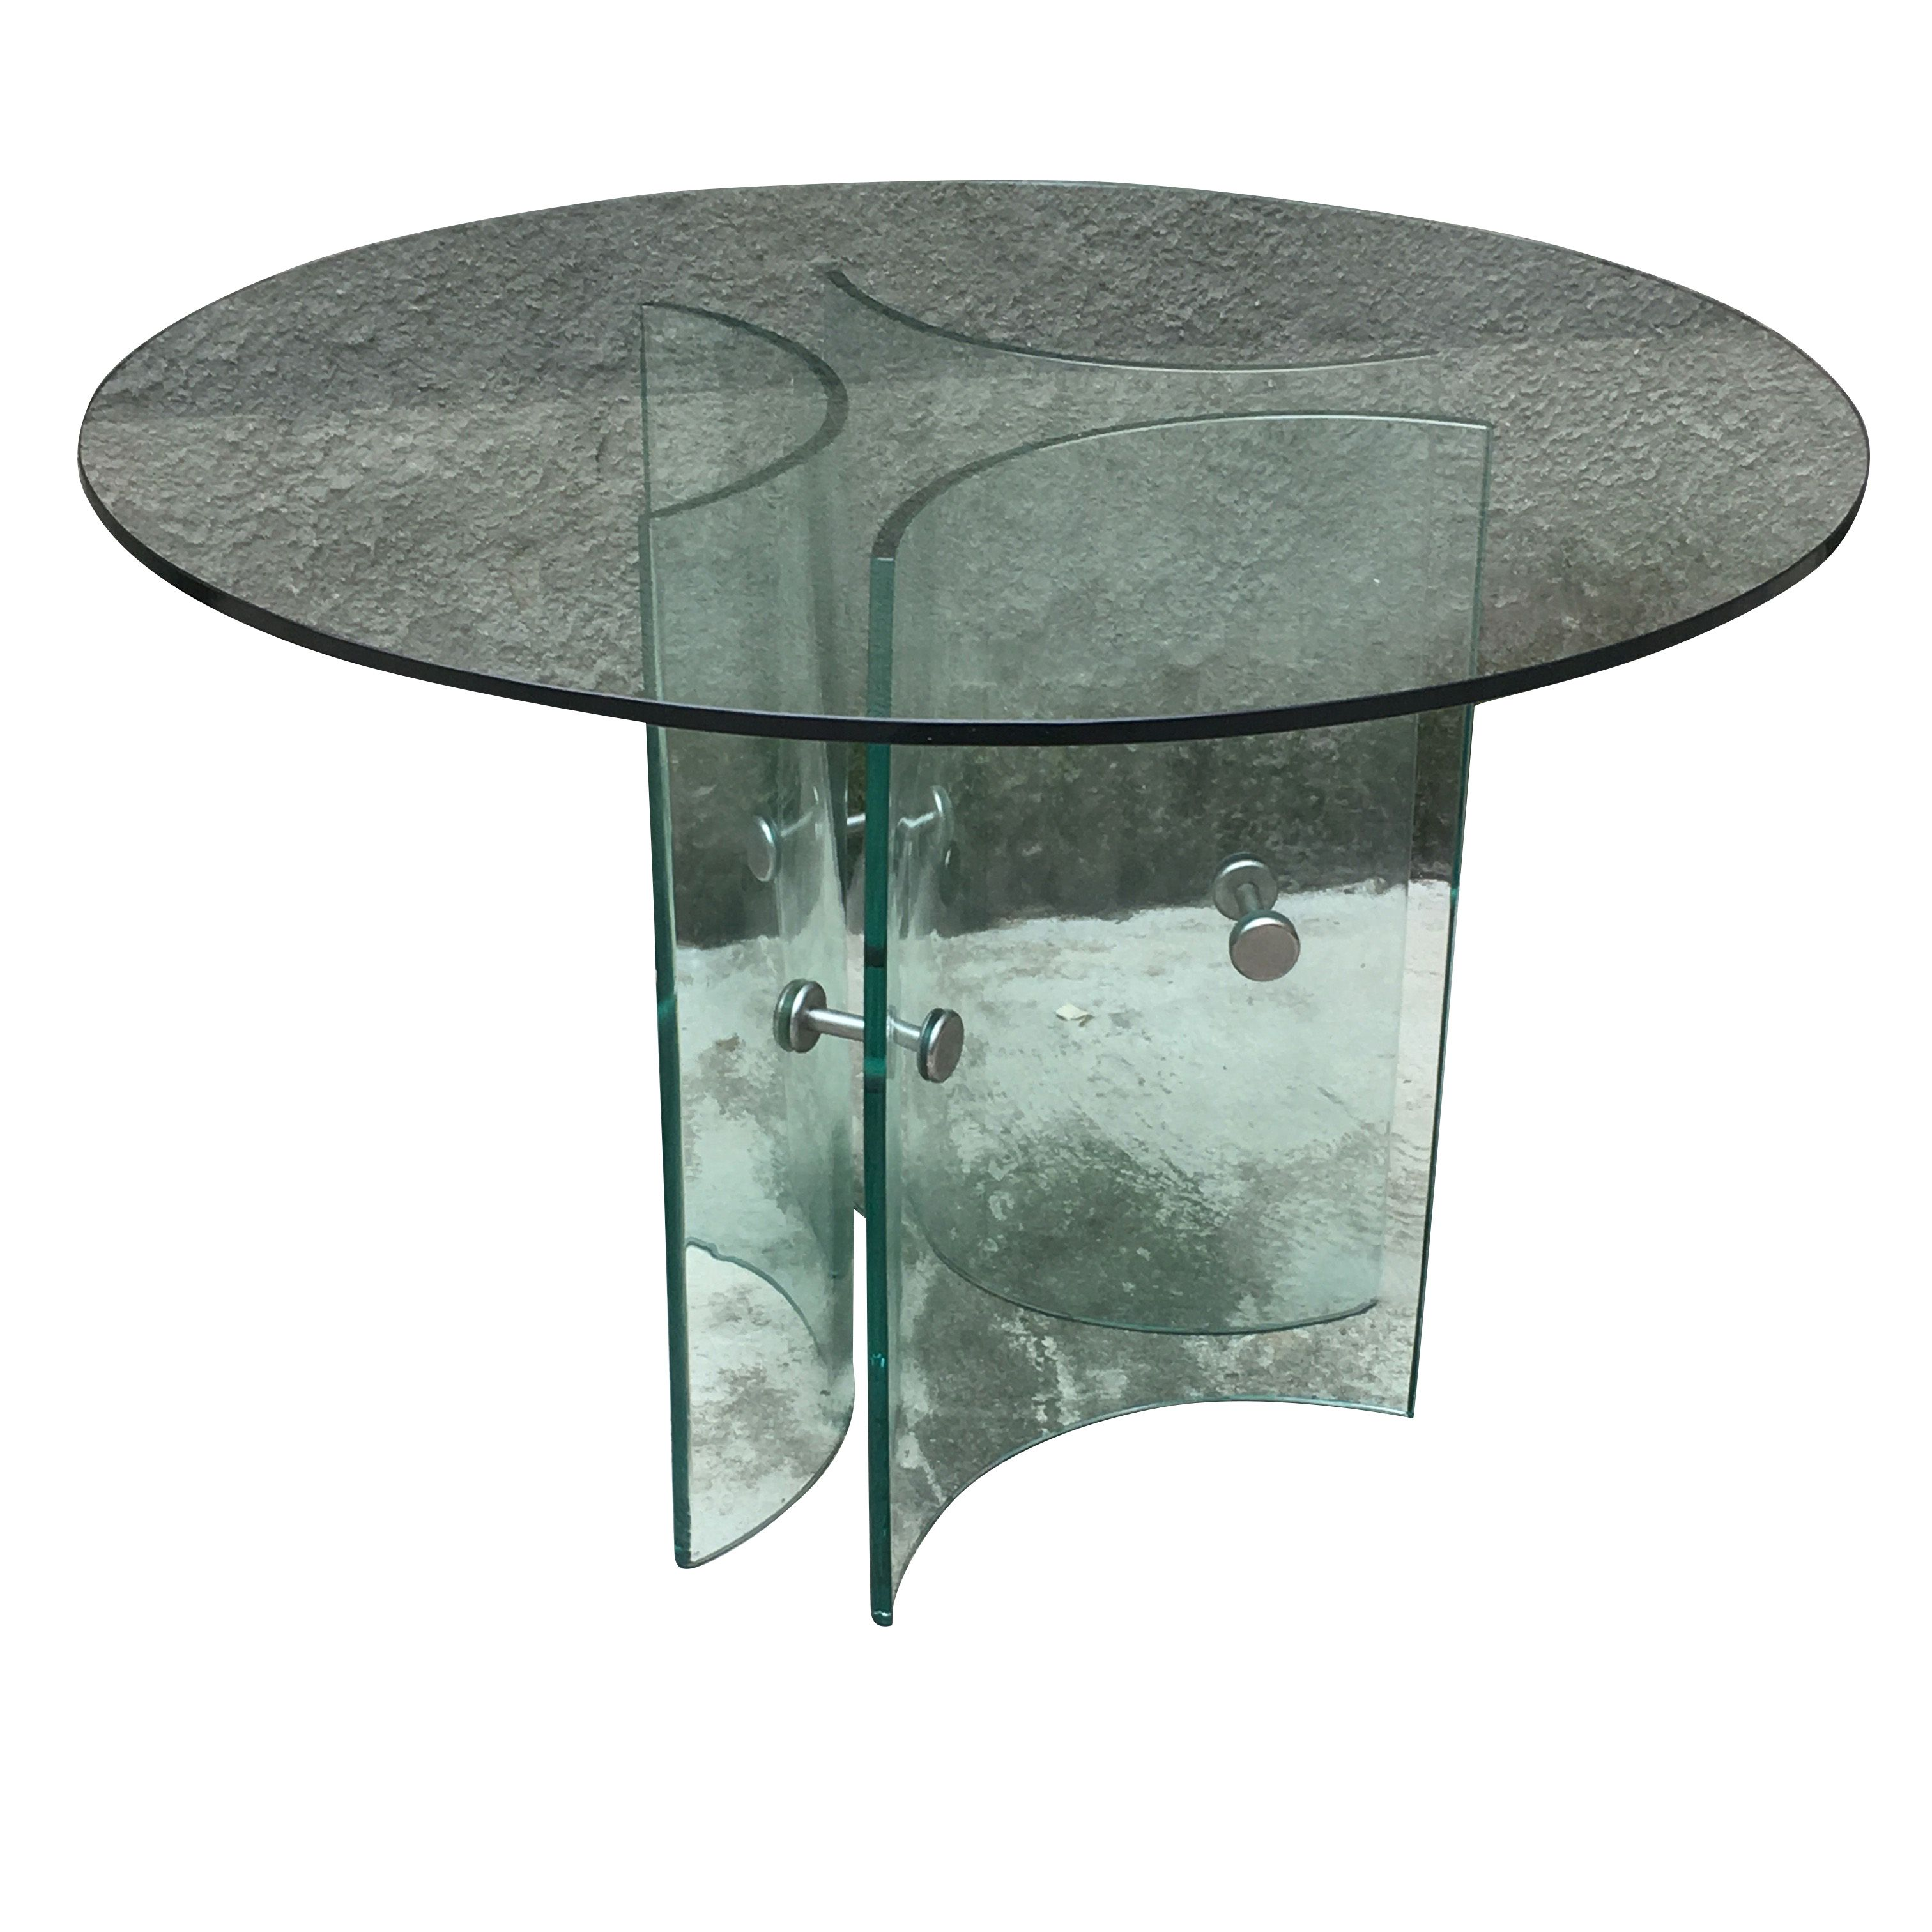 Round Table In Glass Italian Manifacture 60 S Round Table Table Glass [ 3024 x 3024 Pixel ]